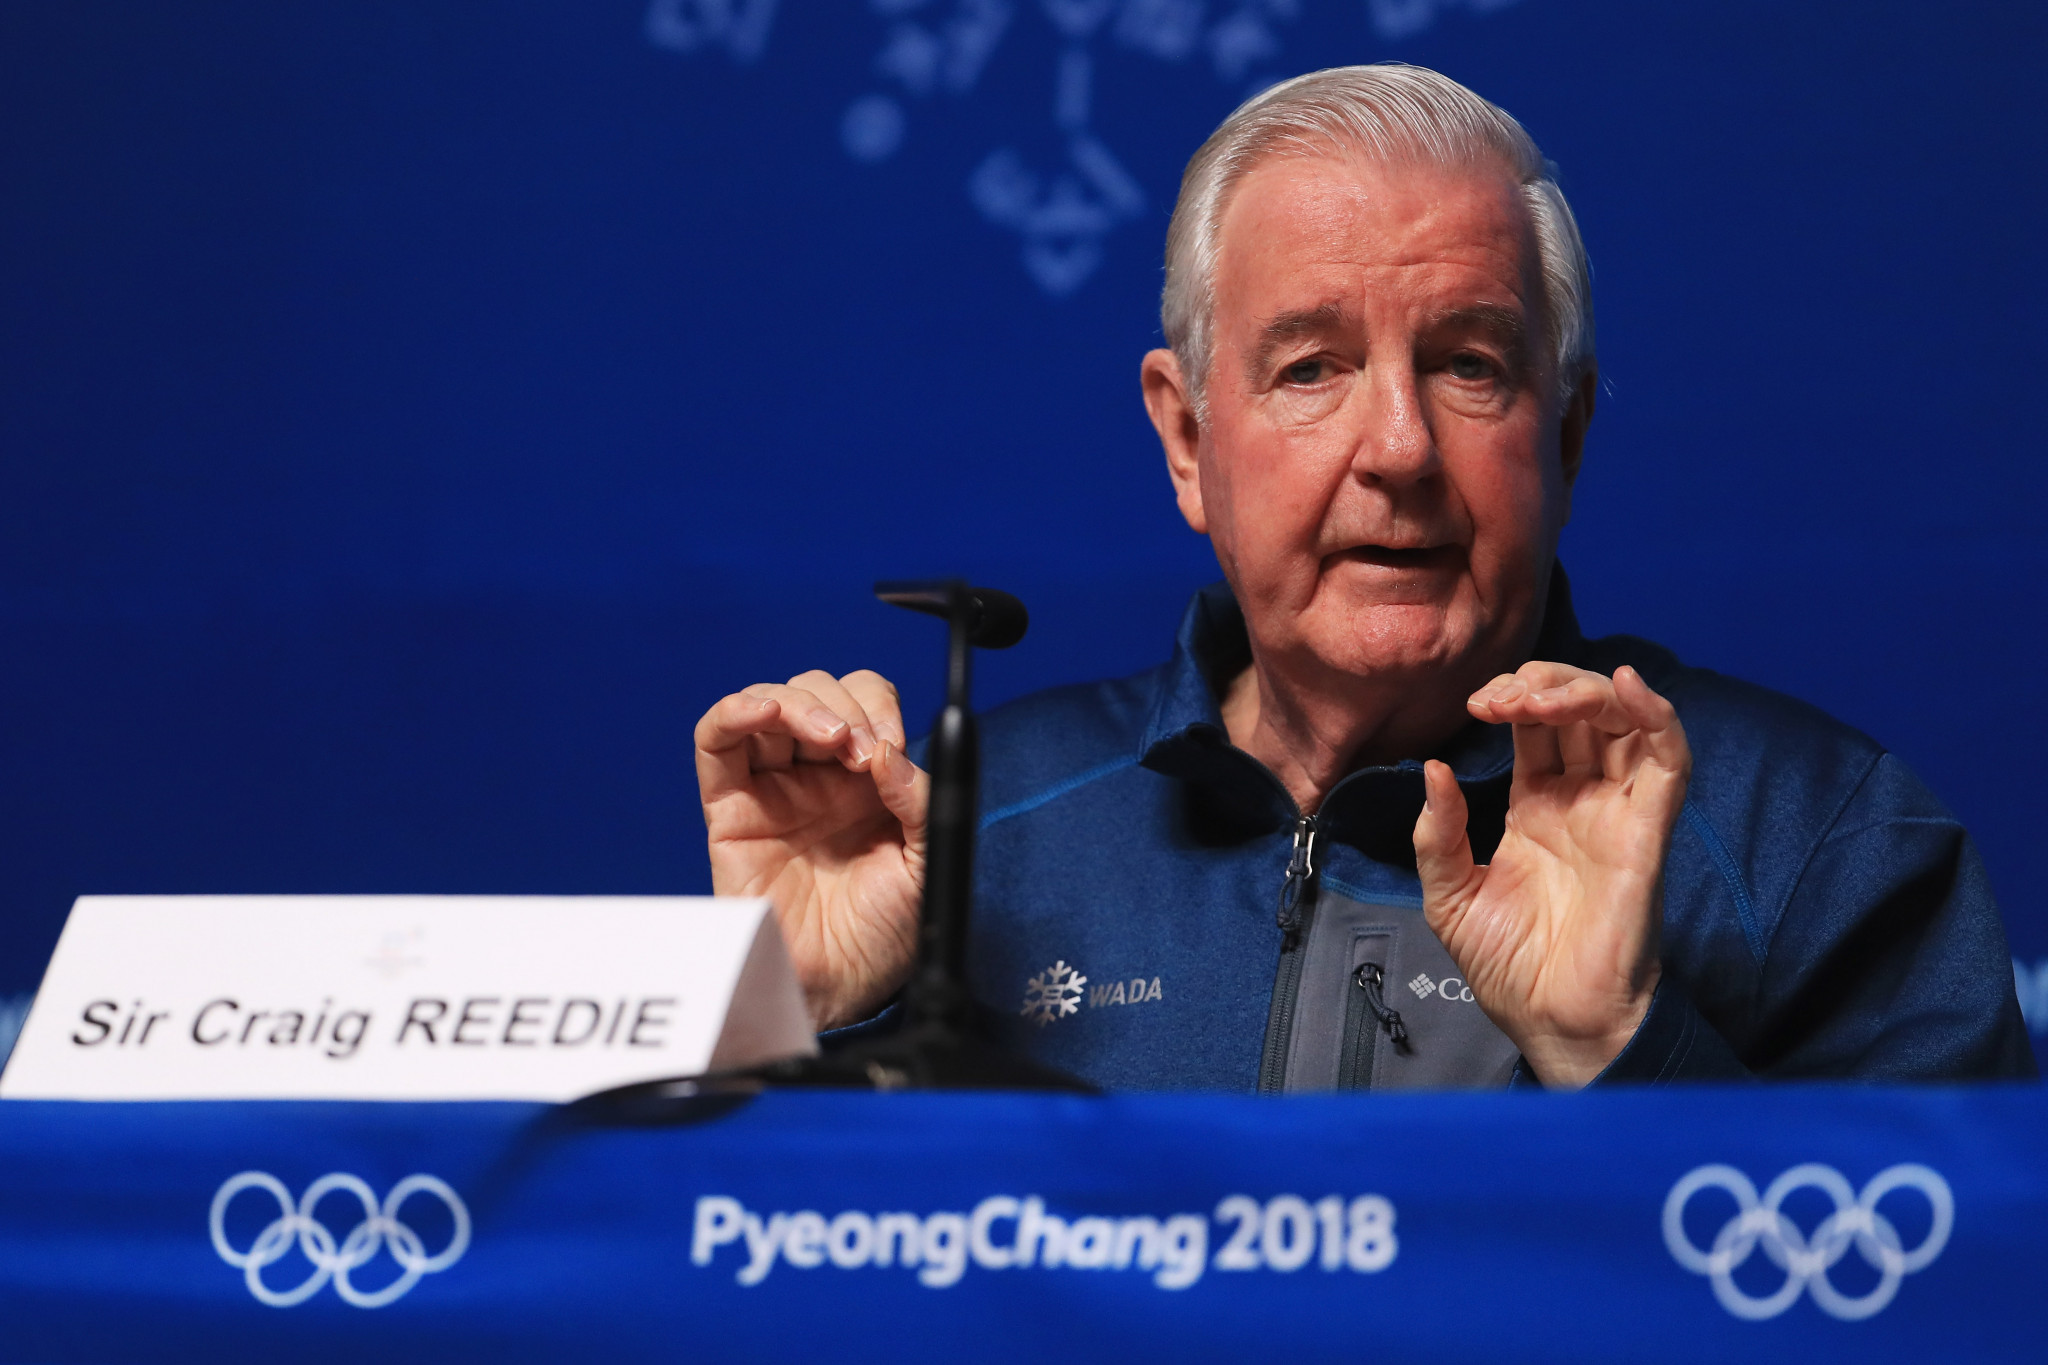 WADA President Sir Craig Reedie welcomed the CAS verdicts today ©Getty Images